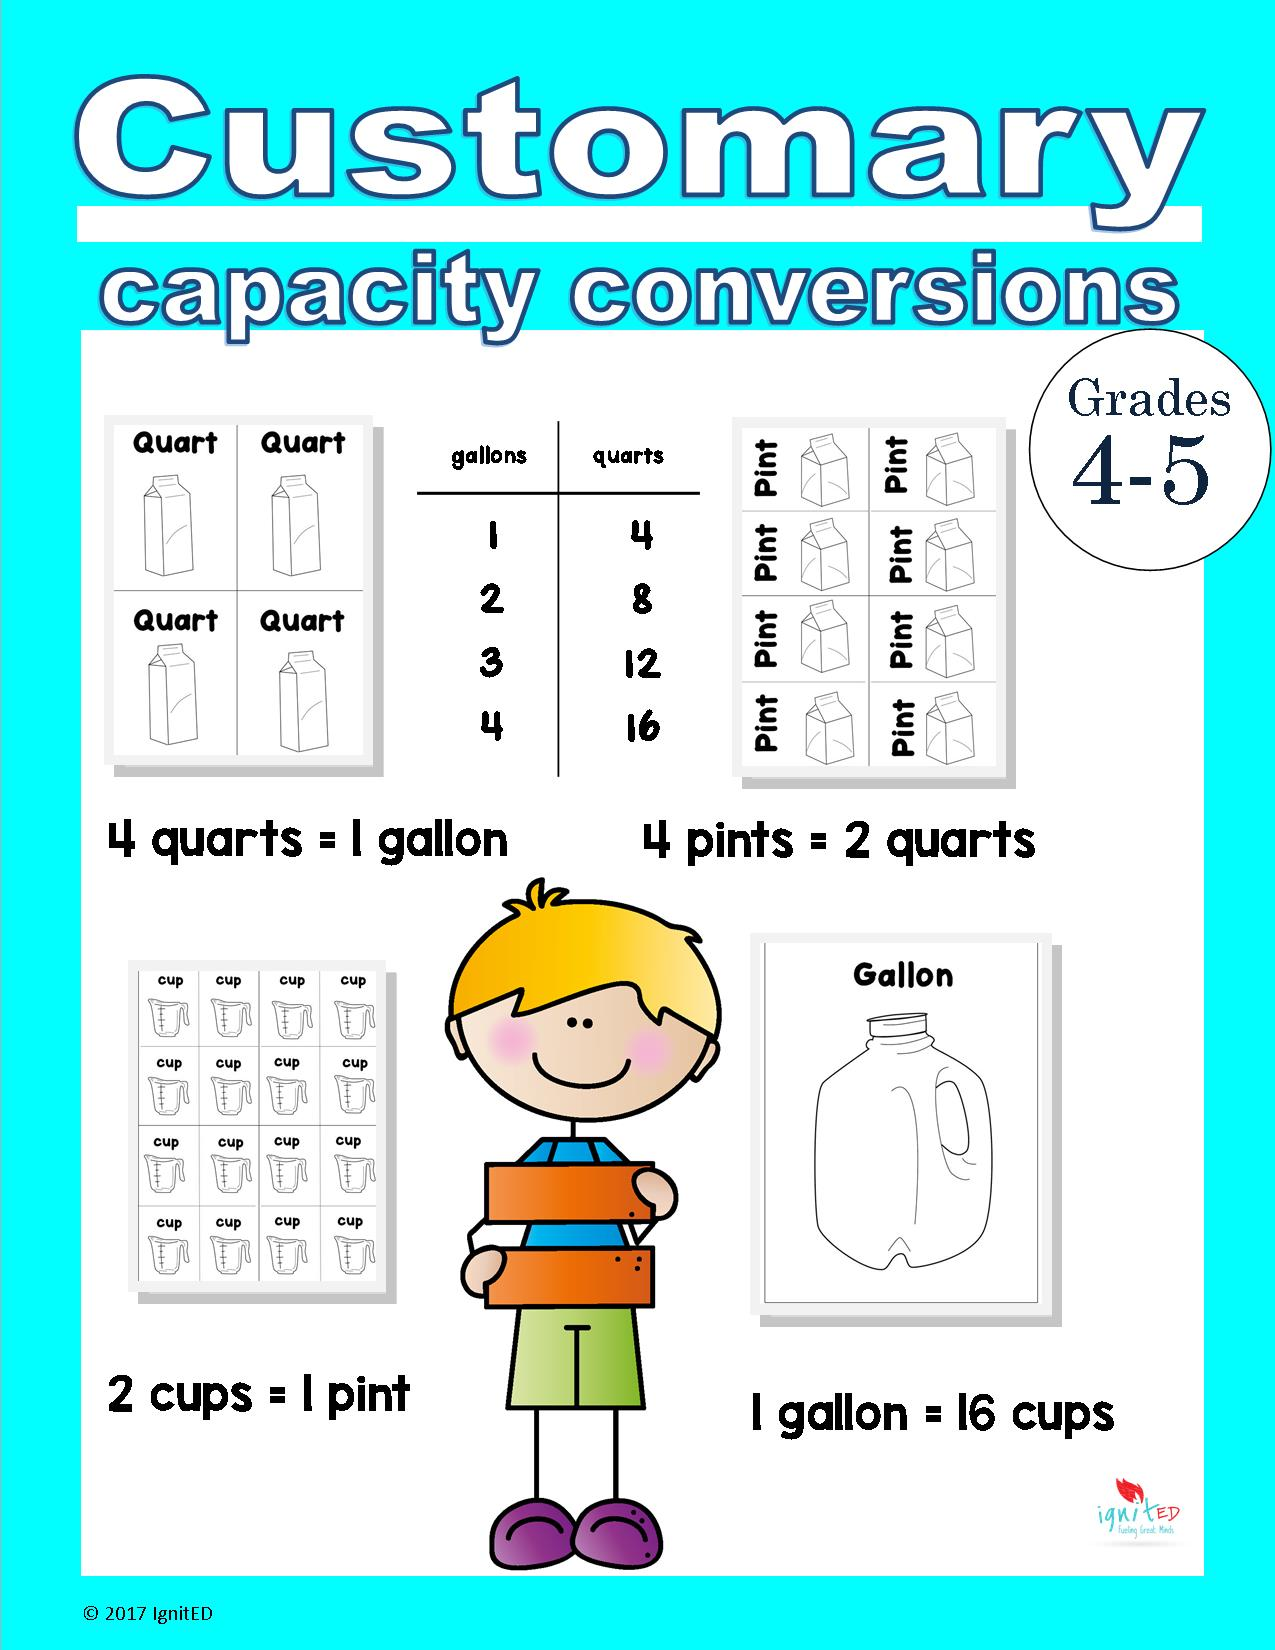 Capacity Customary Conversions